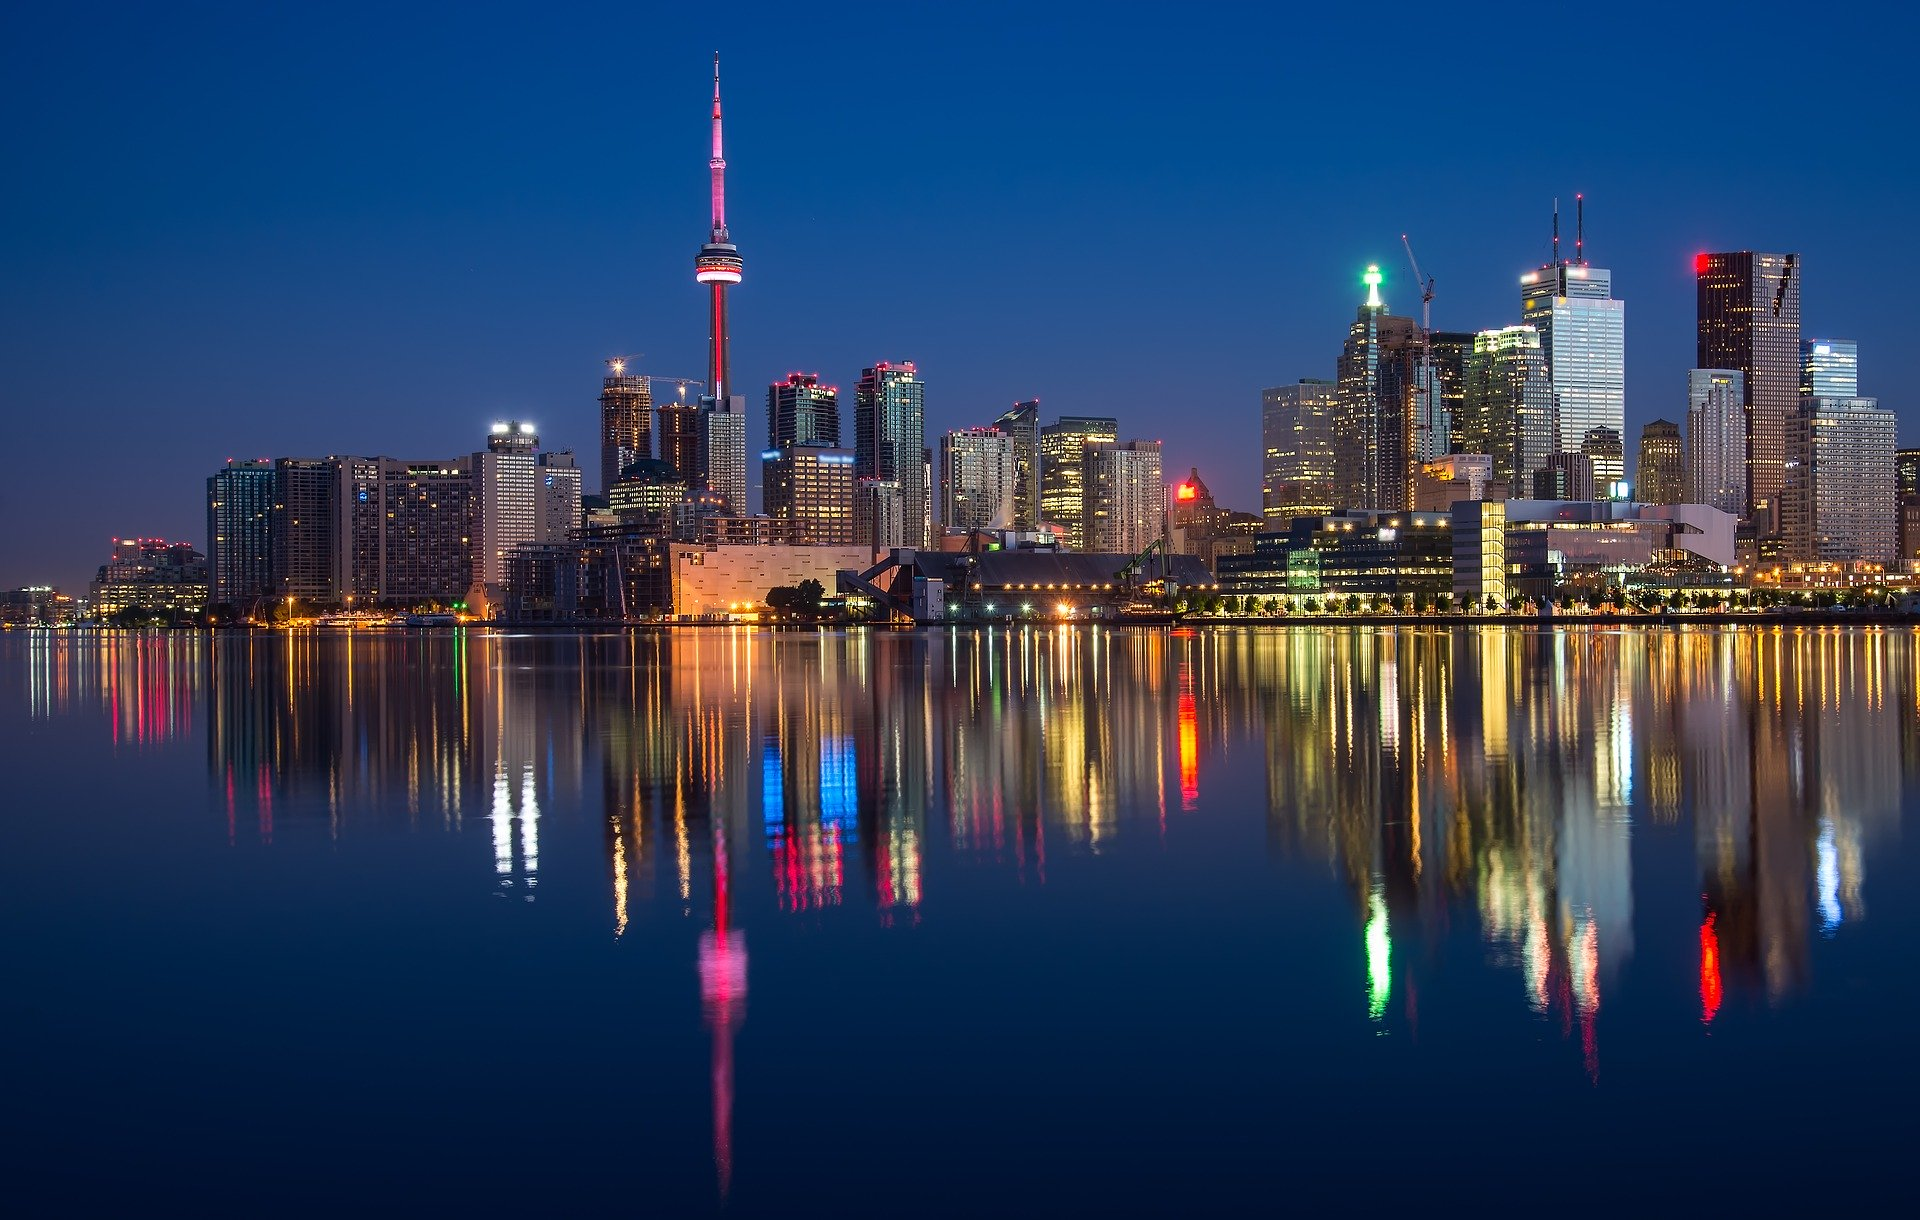 City skyline reflected on water.